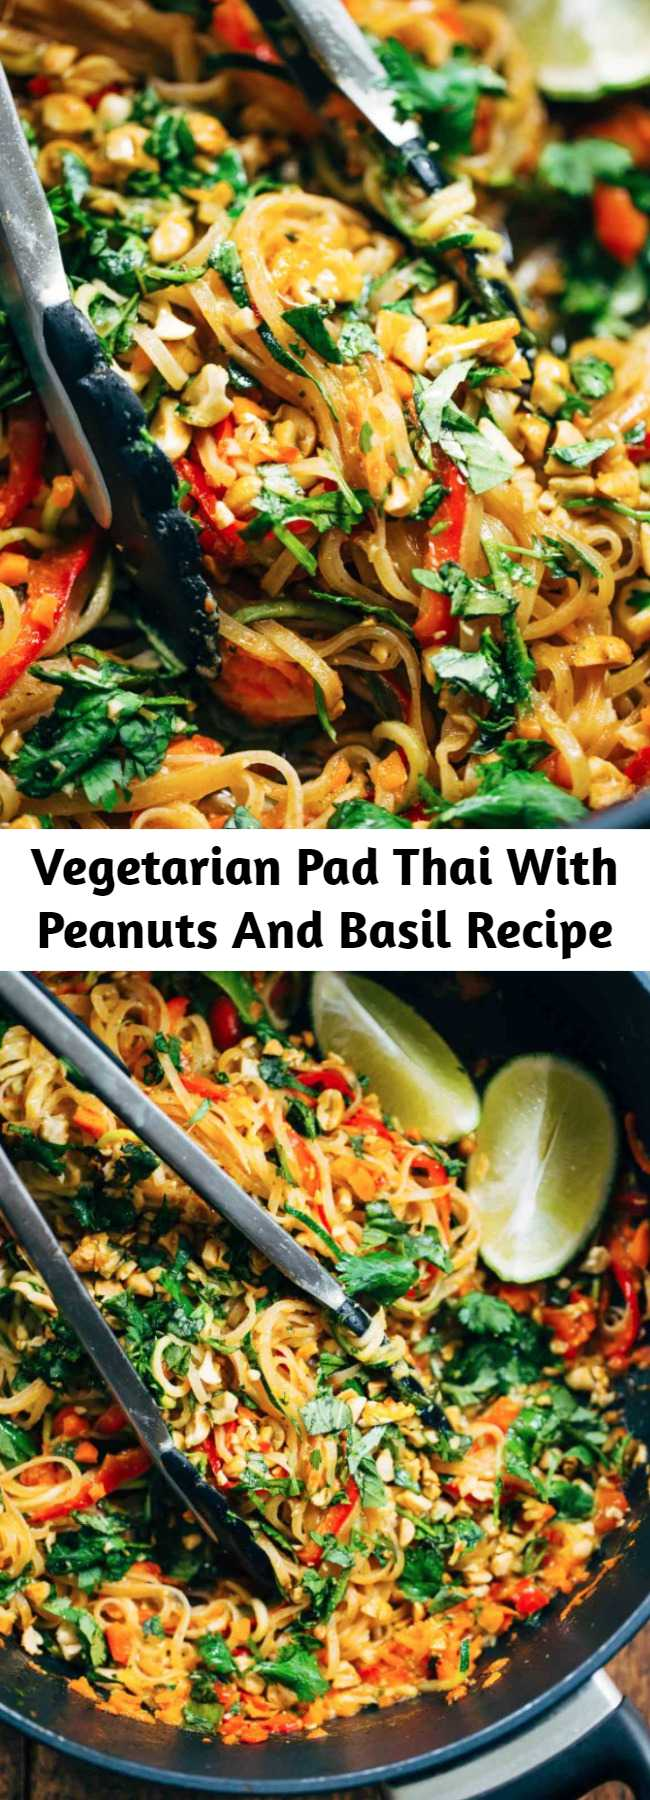 Vegetarian Pad Thai With Peanuts And Basil Recipe - Rainbow Vegetarian Pad Thai with a simple five ingredient Pad Thai sauce – adaptable to any veggies you have on hand! So easy and delicious! #padthai #recipe #noodles #meatless